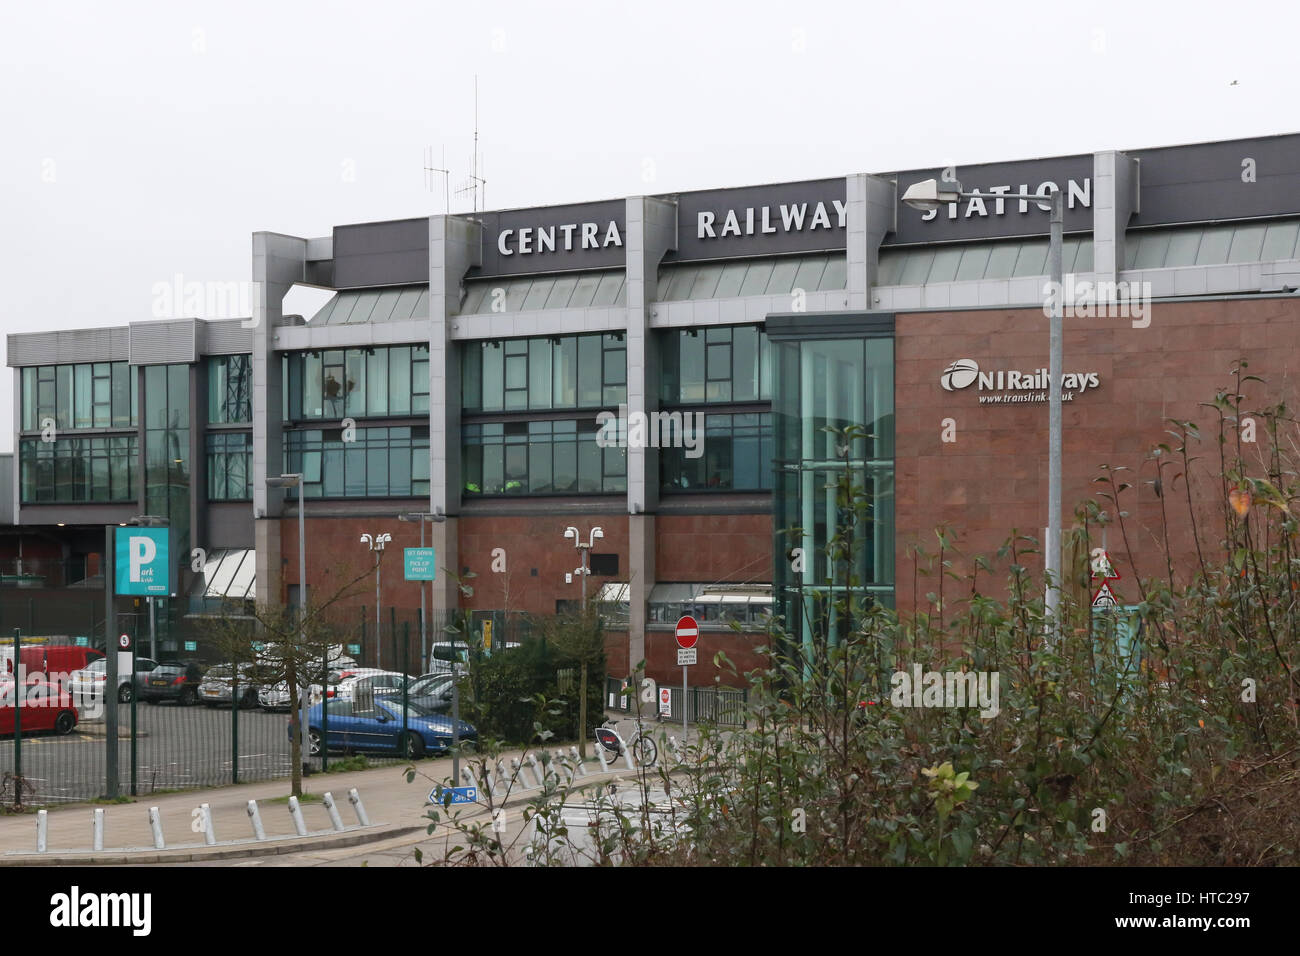 The Central Railway Station in Belfast, Northern Ireland. The station is not actually in the city centre but about - Stock Image